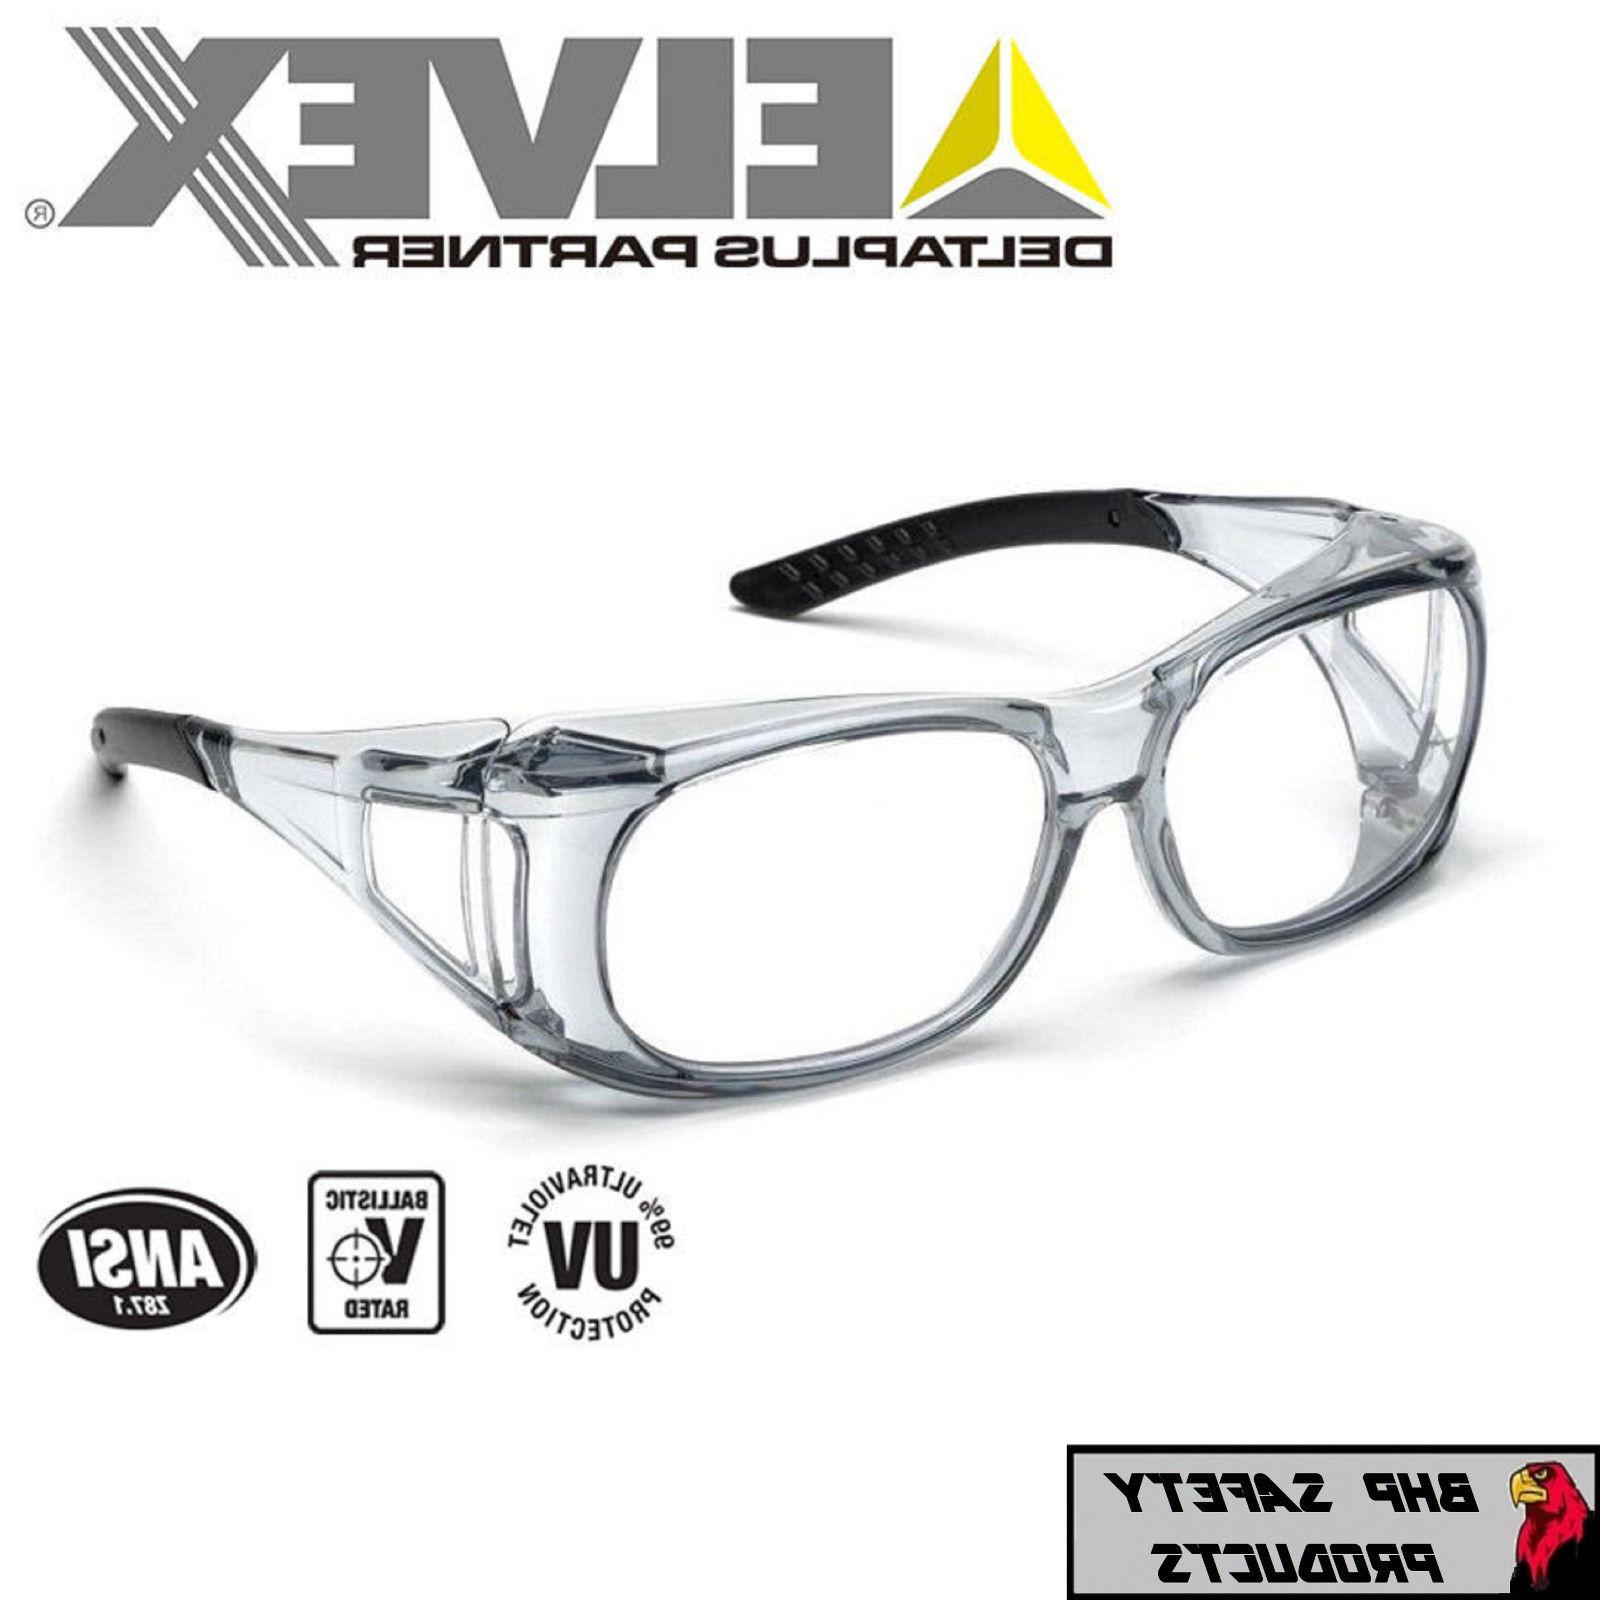 ELVEX SG-37C OVR SPECS II SHOOTING/SAFETY OVER-THE-SPECTACLE